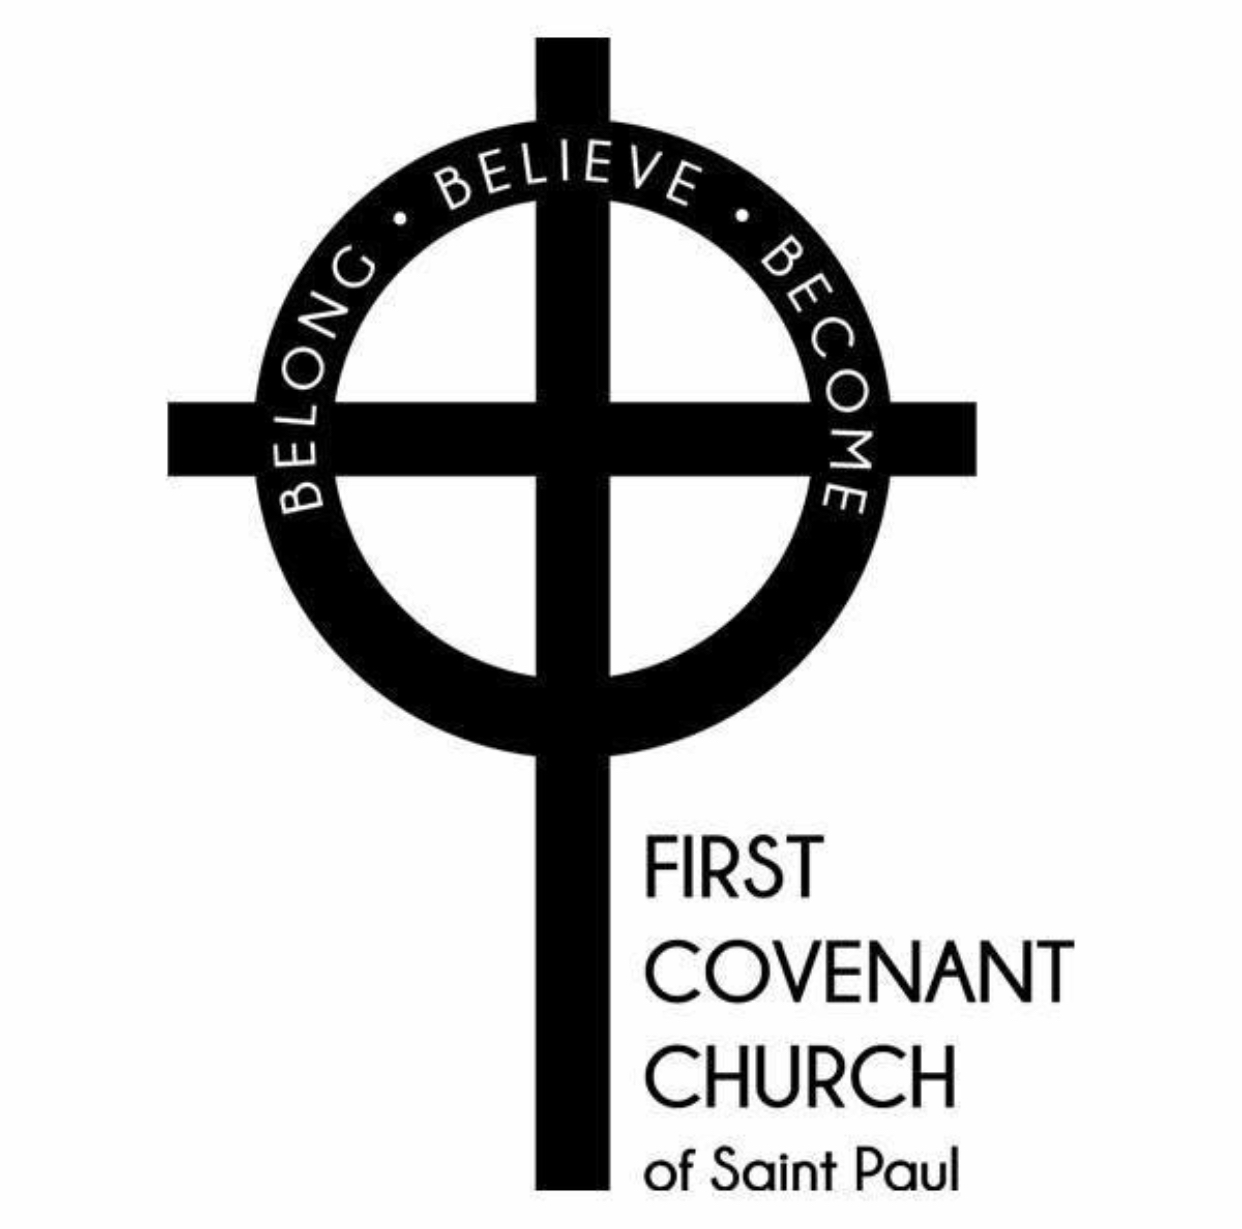 First Covenant Church